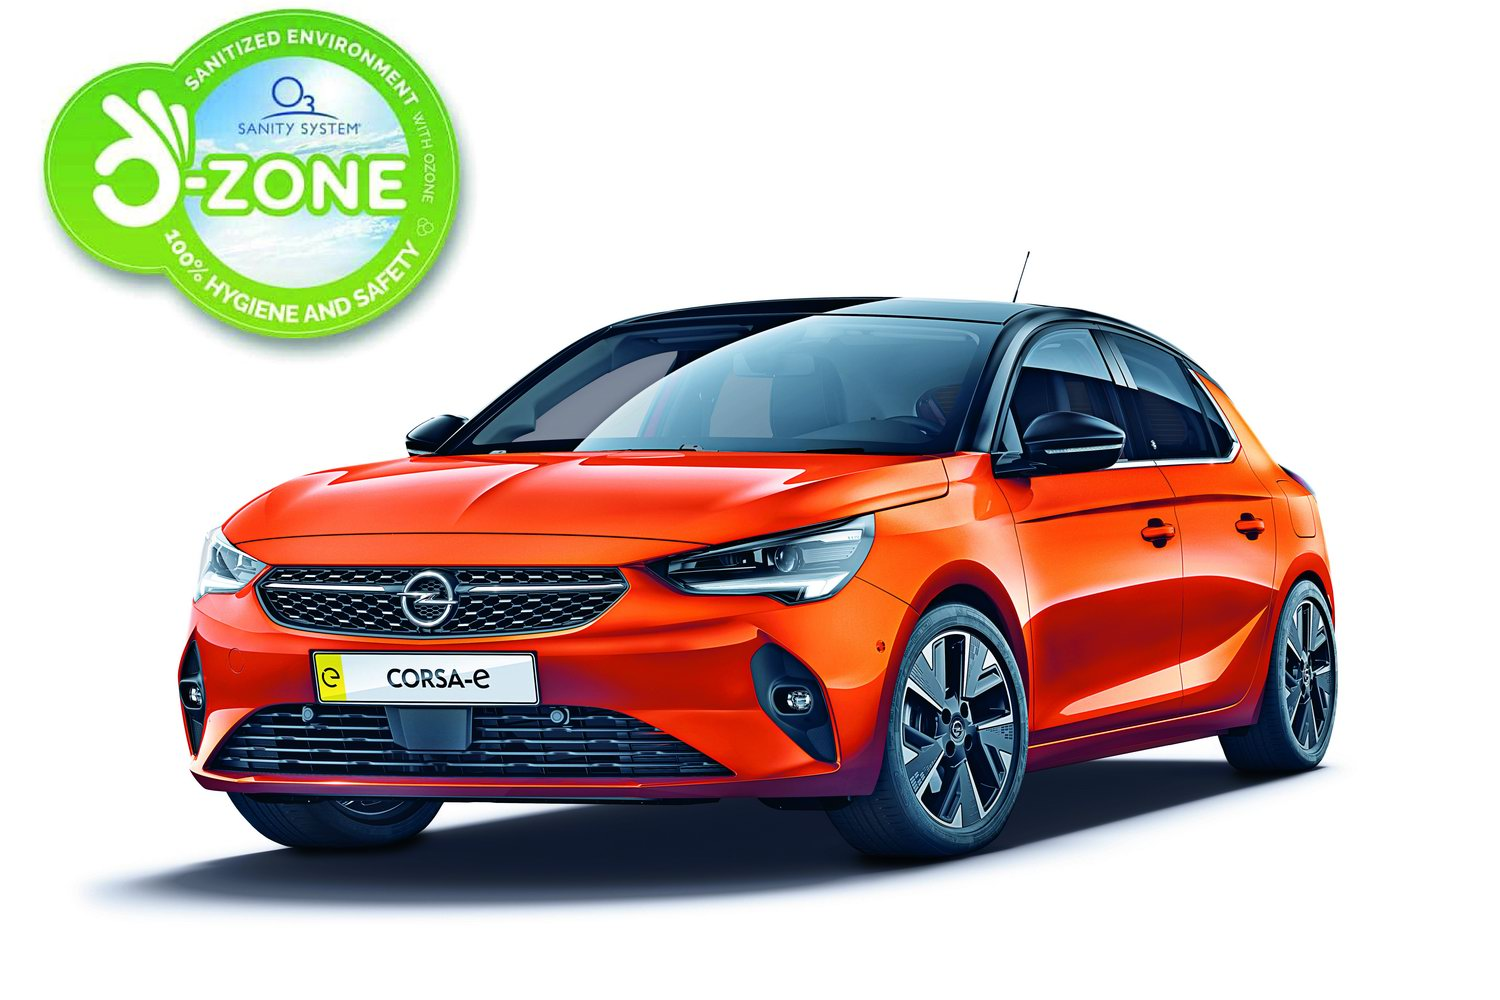 Car News | Opel Ireland to deep clean vehicles | CompleteCar.ie